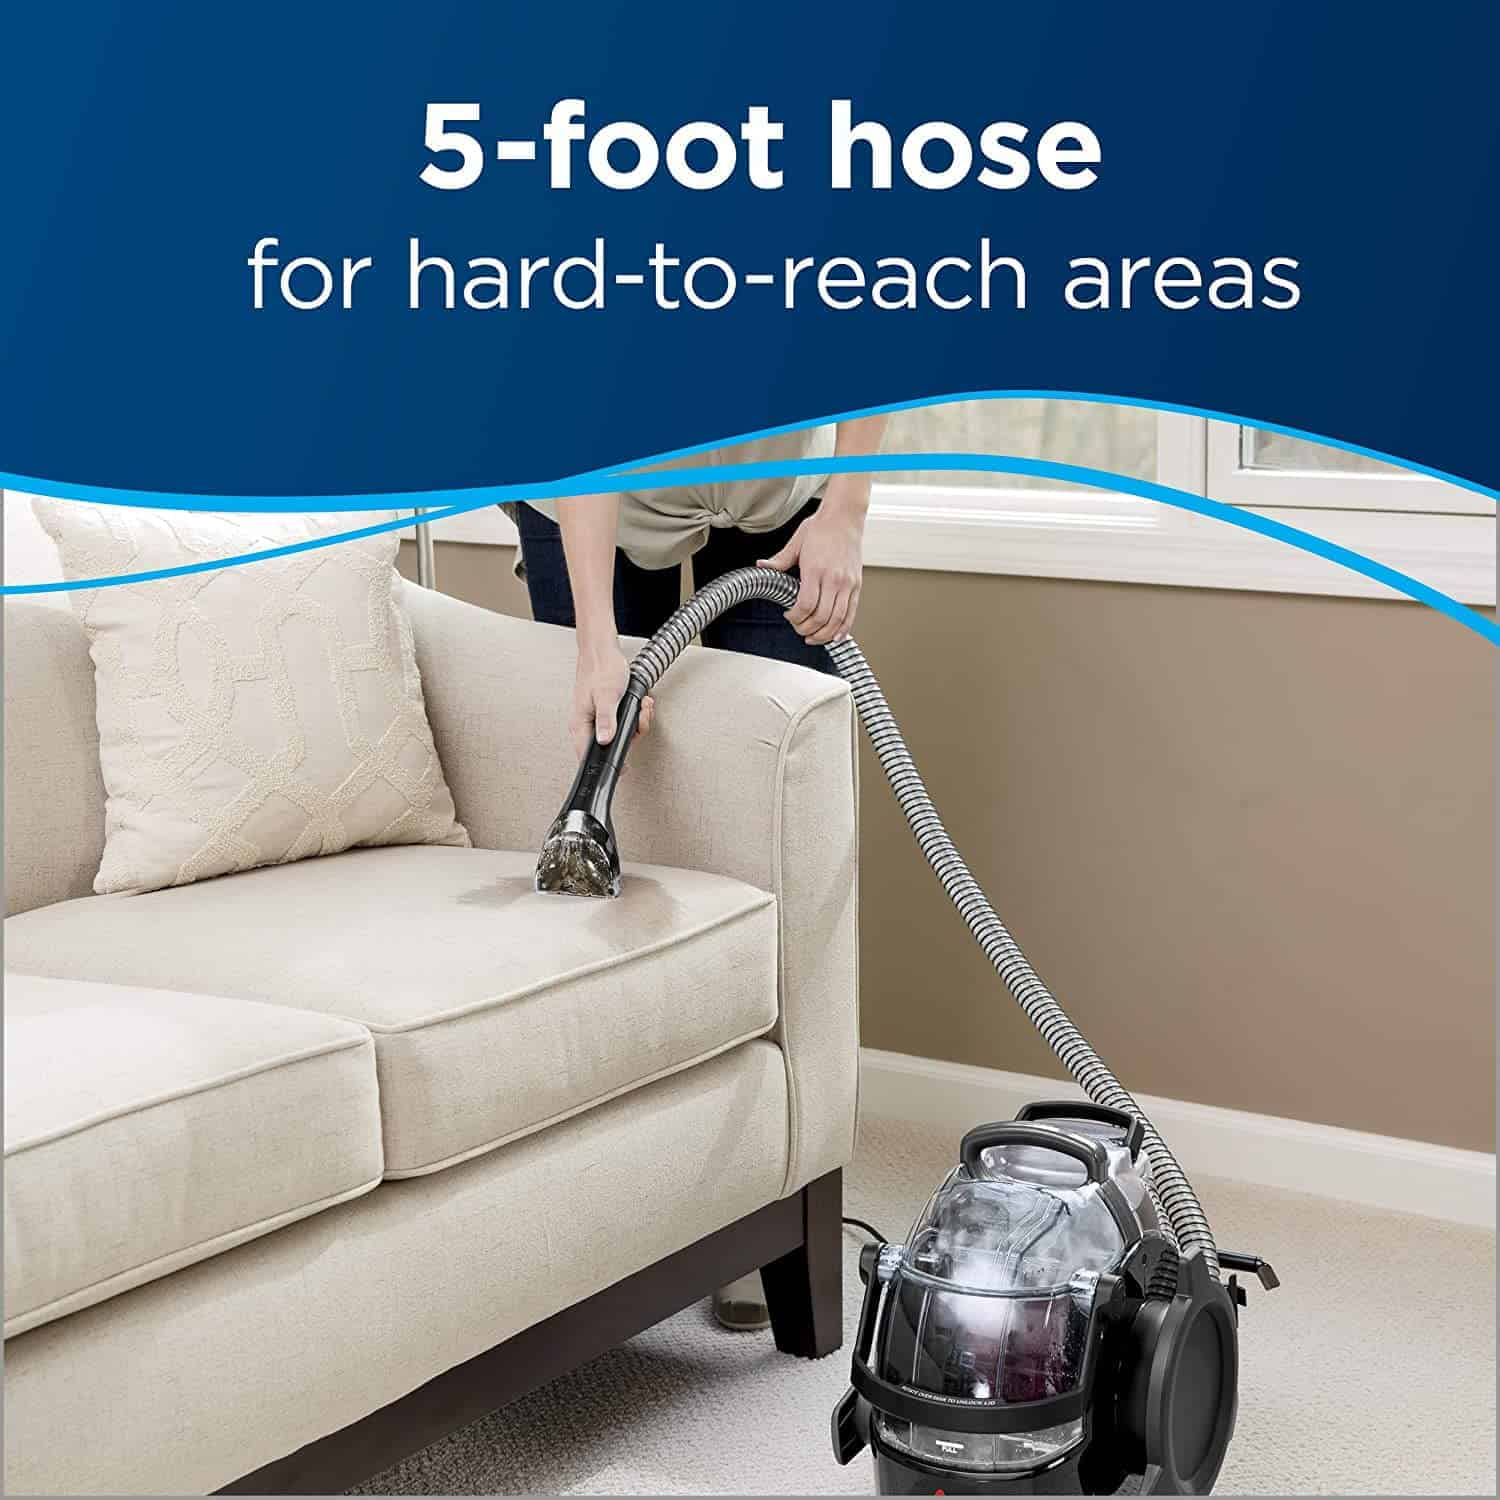 Best value portable carpet and upholstery cleaner: Bissell 3624 SpotClean